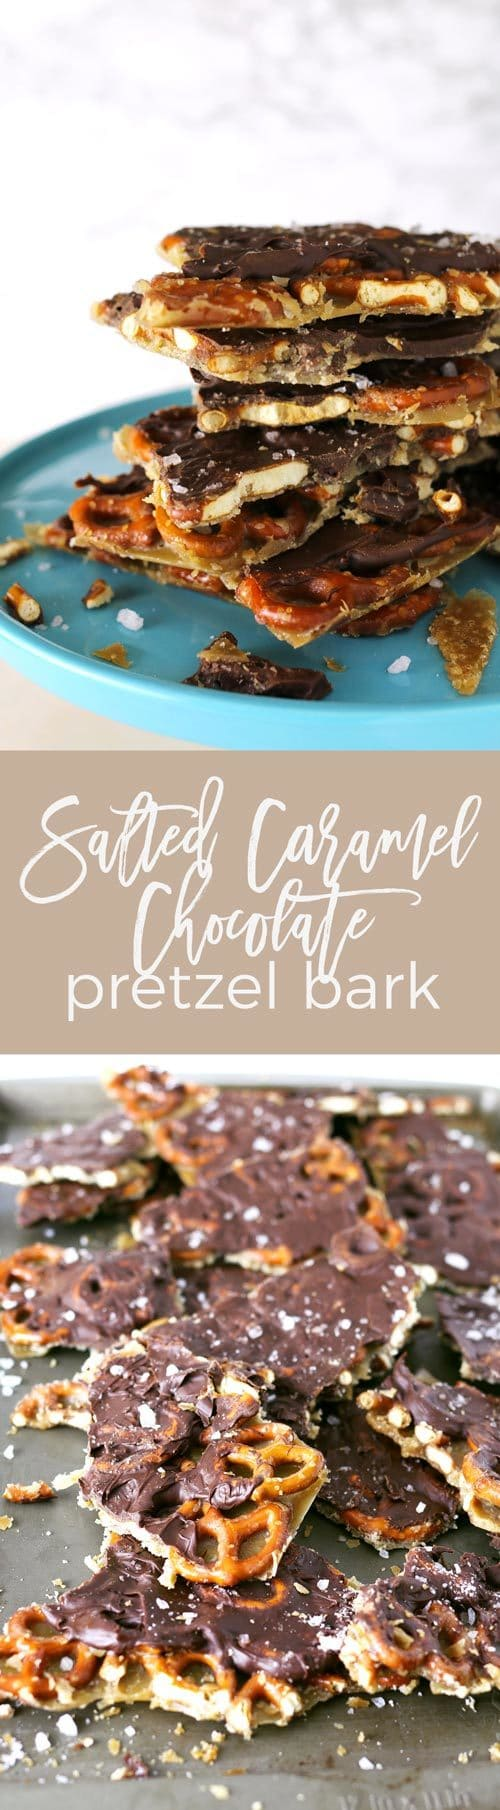 Salted caramel chocolate pretzel bark pin